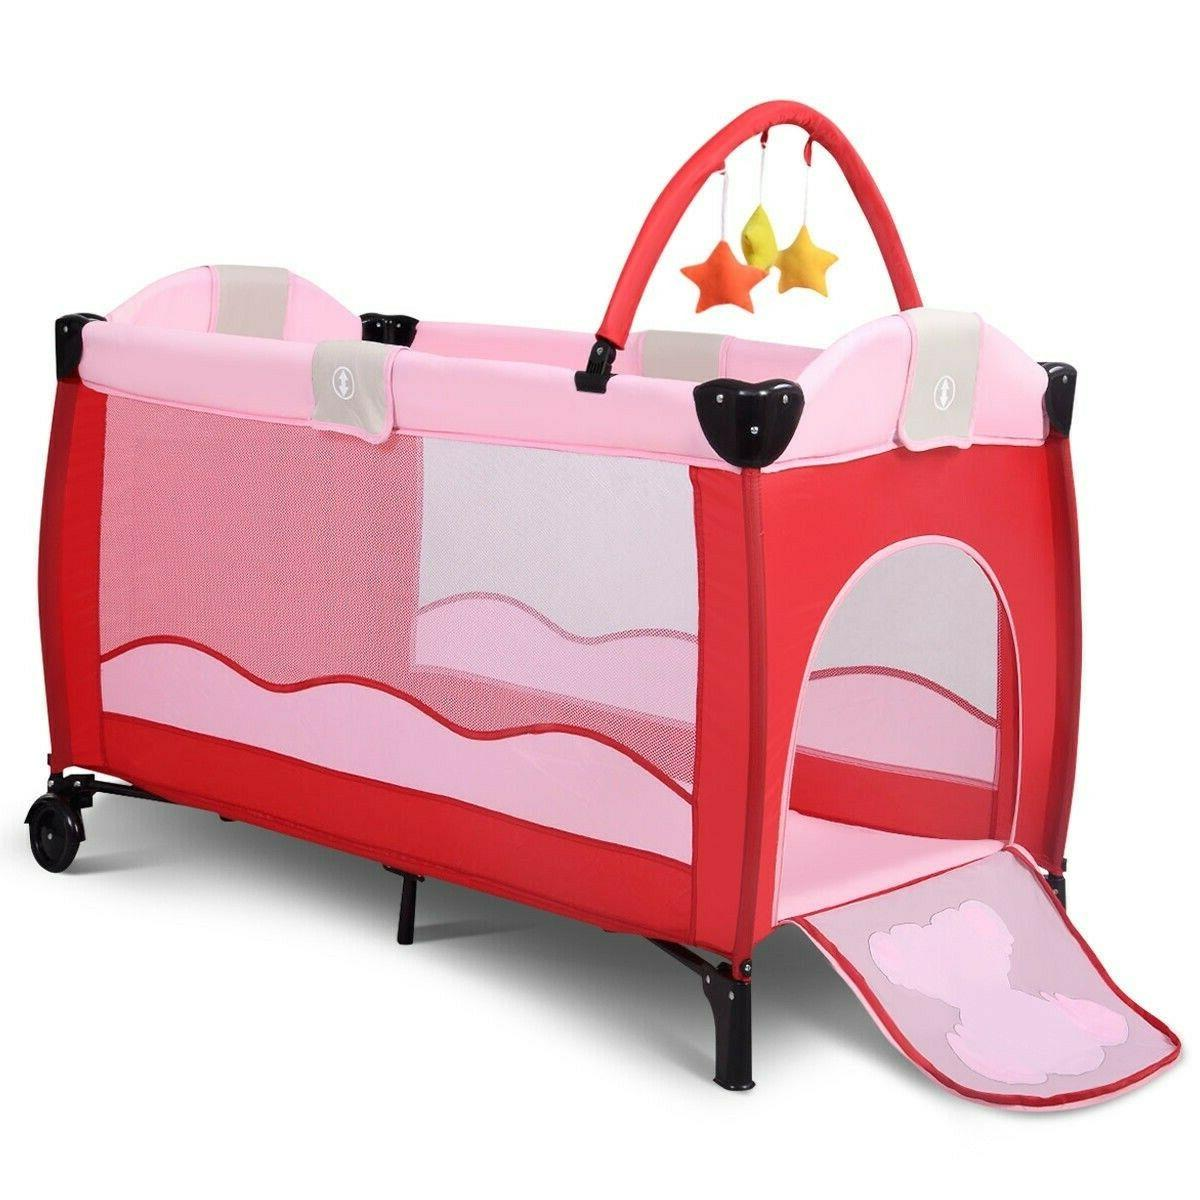 Baby Infant Foldable Bassinet Portable Playpen Nursery Table